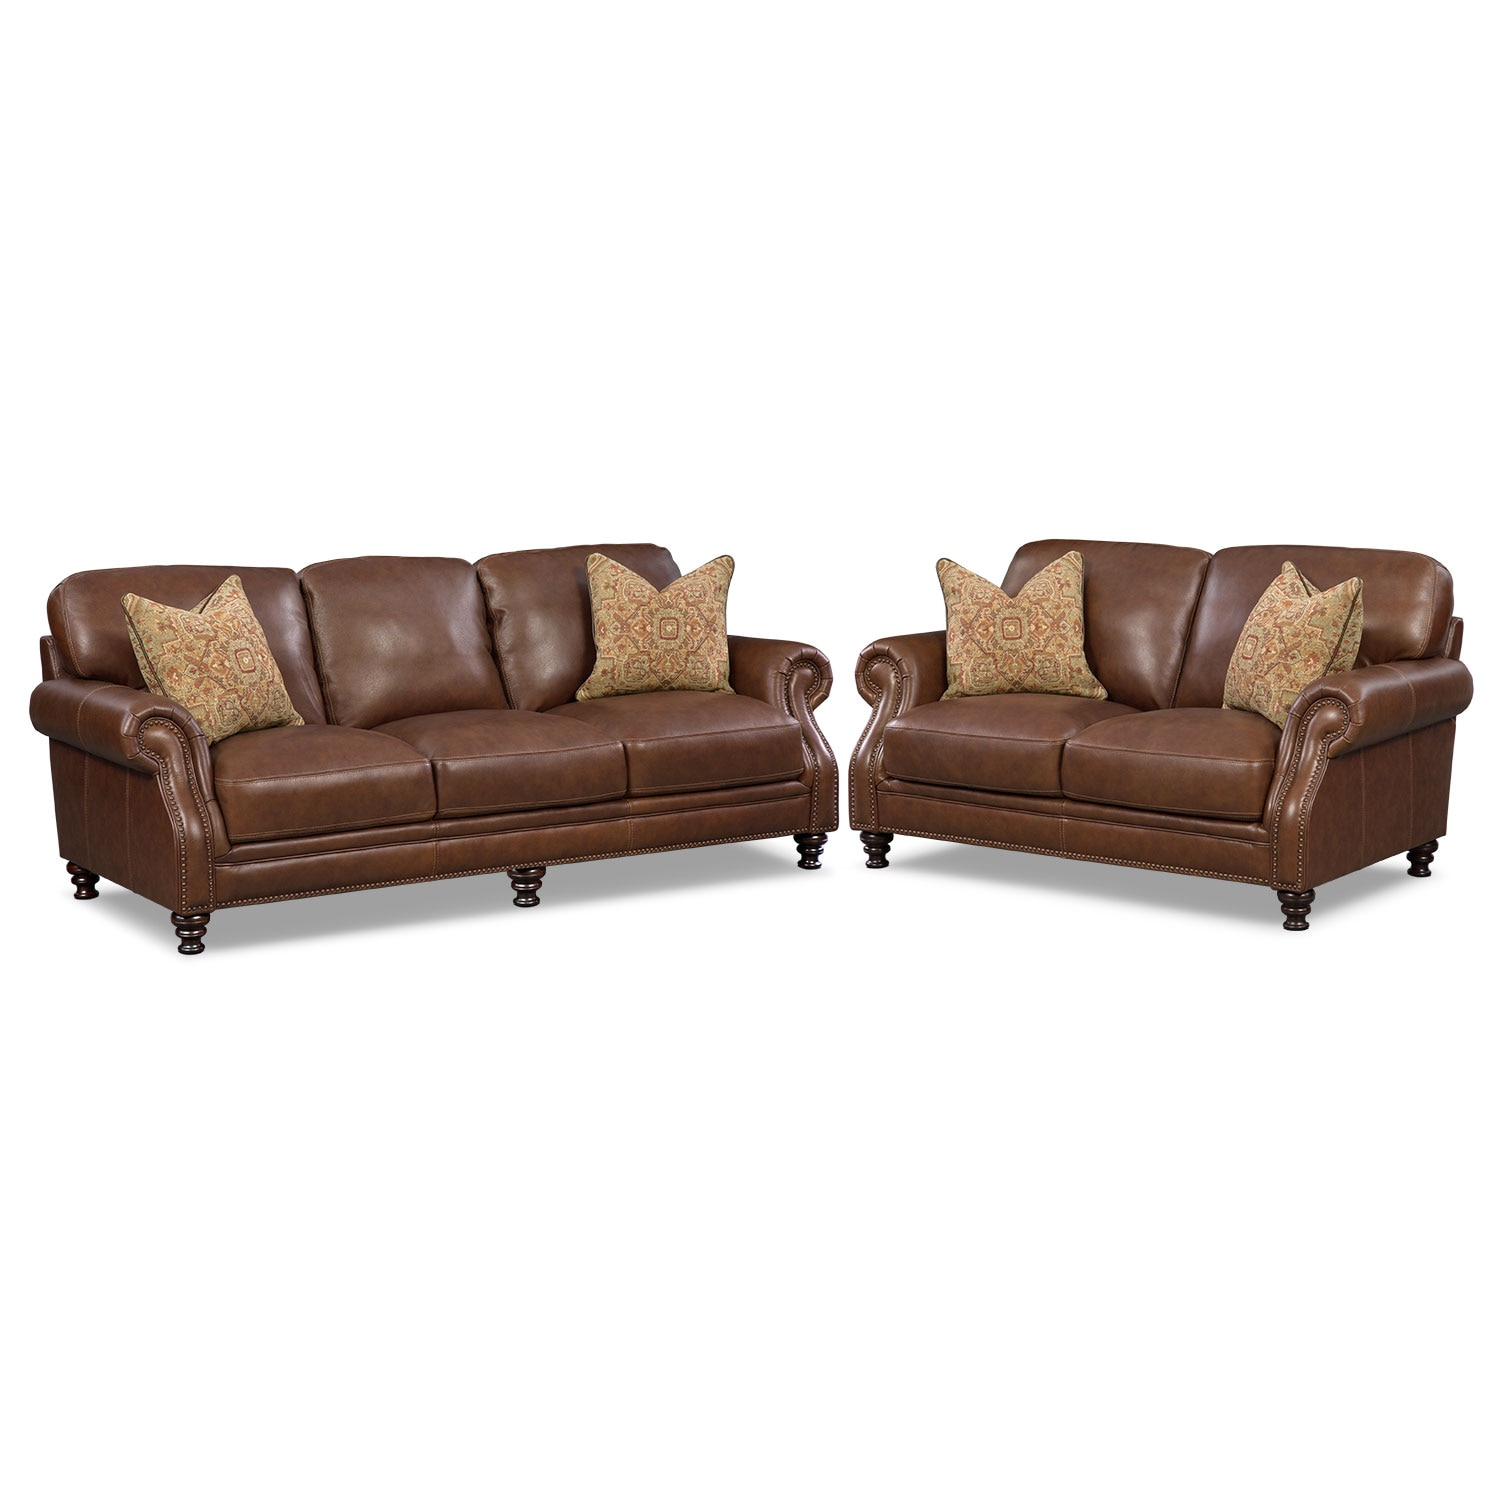 Living Room Furniture - Carrington Tobacco 2 Pc. Living Room